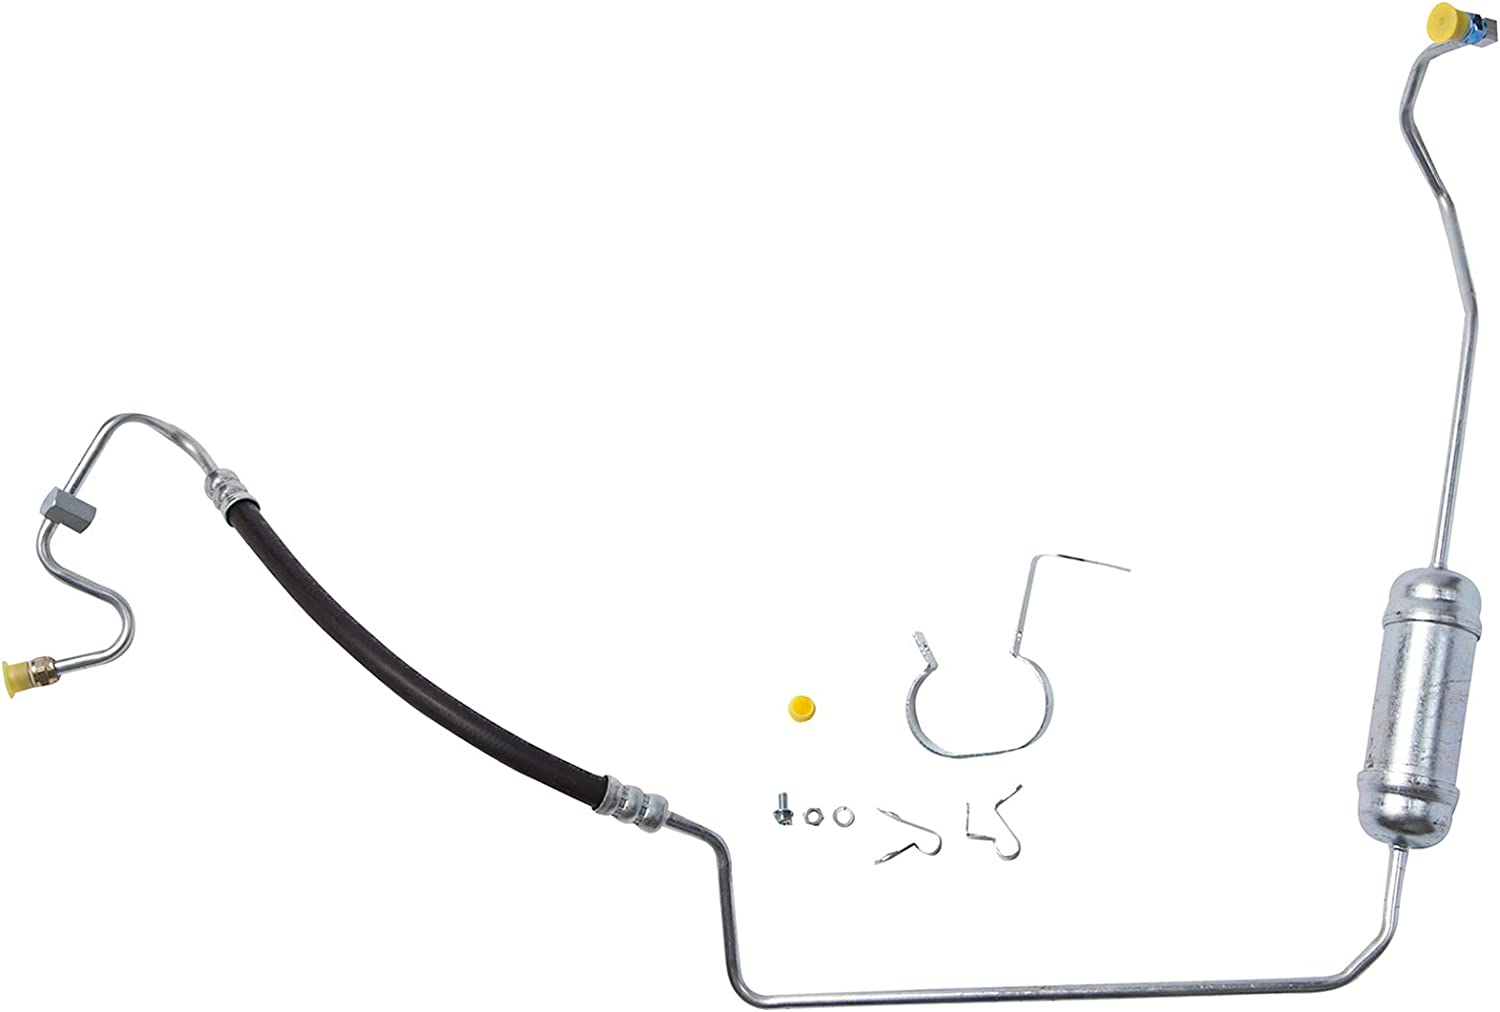 Gates 365890 Power Steering Line Assembly Fresno Mall Hose Pressure Max 47% OFF